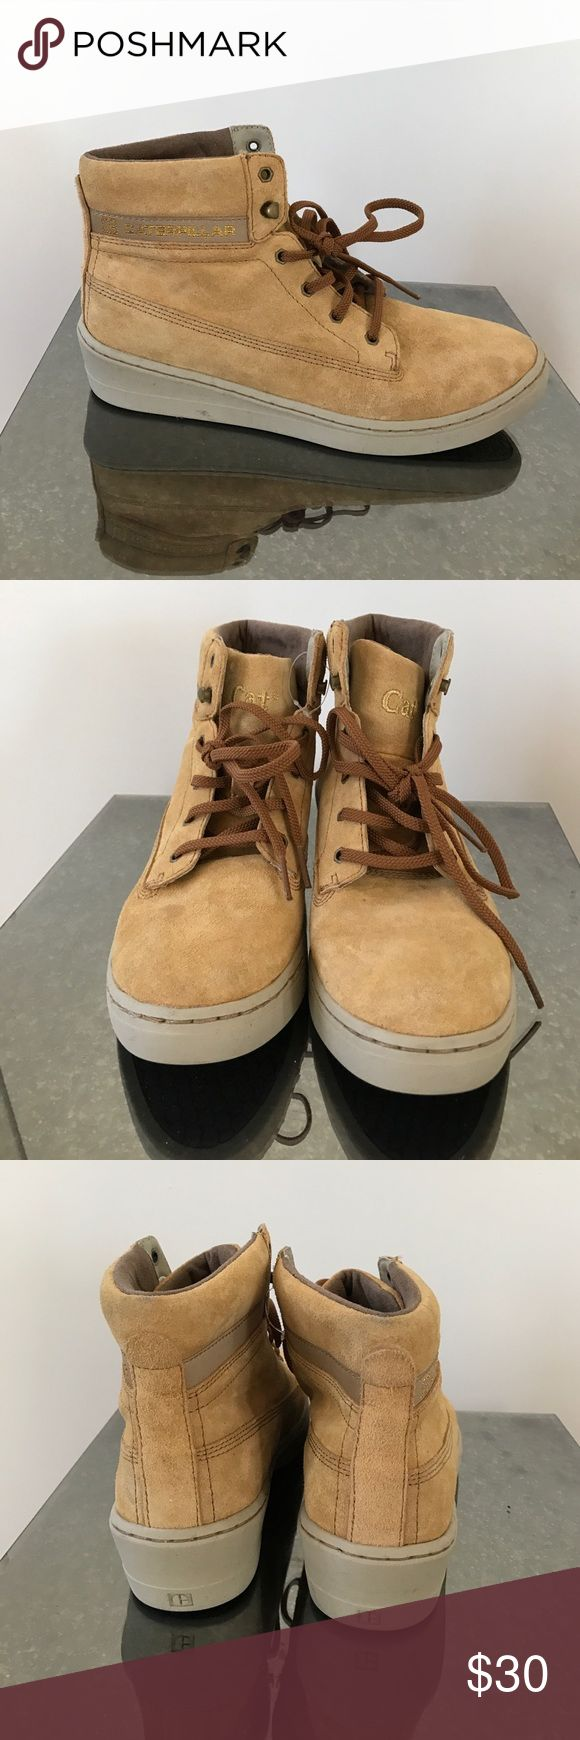 Cat footwear wedge work boots tan suede 6 Awesome unique wedge work boots with tan suede. From Cat footwear so they are extremely comfortable! These have never been worn but got a little scuffed in storage. Caterpillar Shoes Ankle Boots & Booties